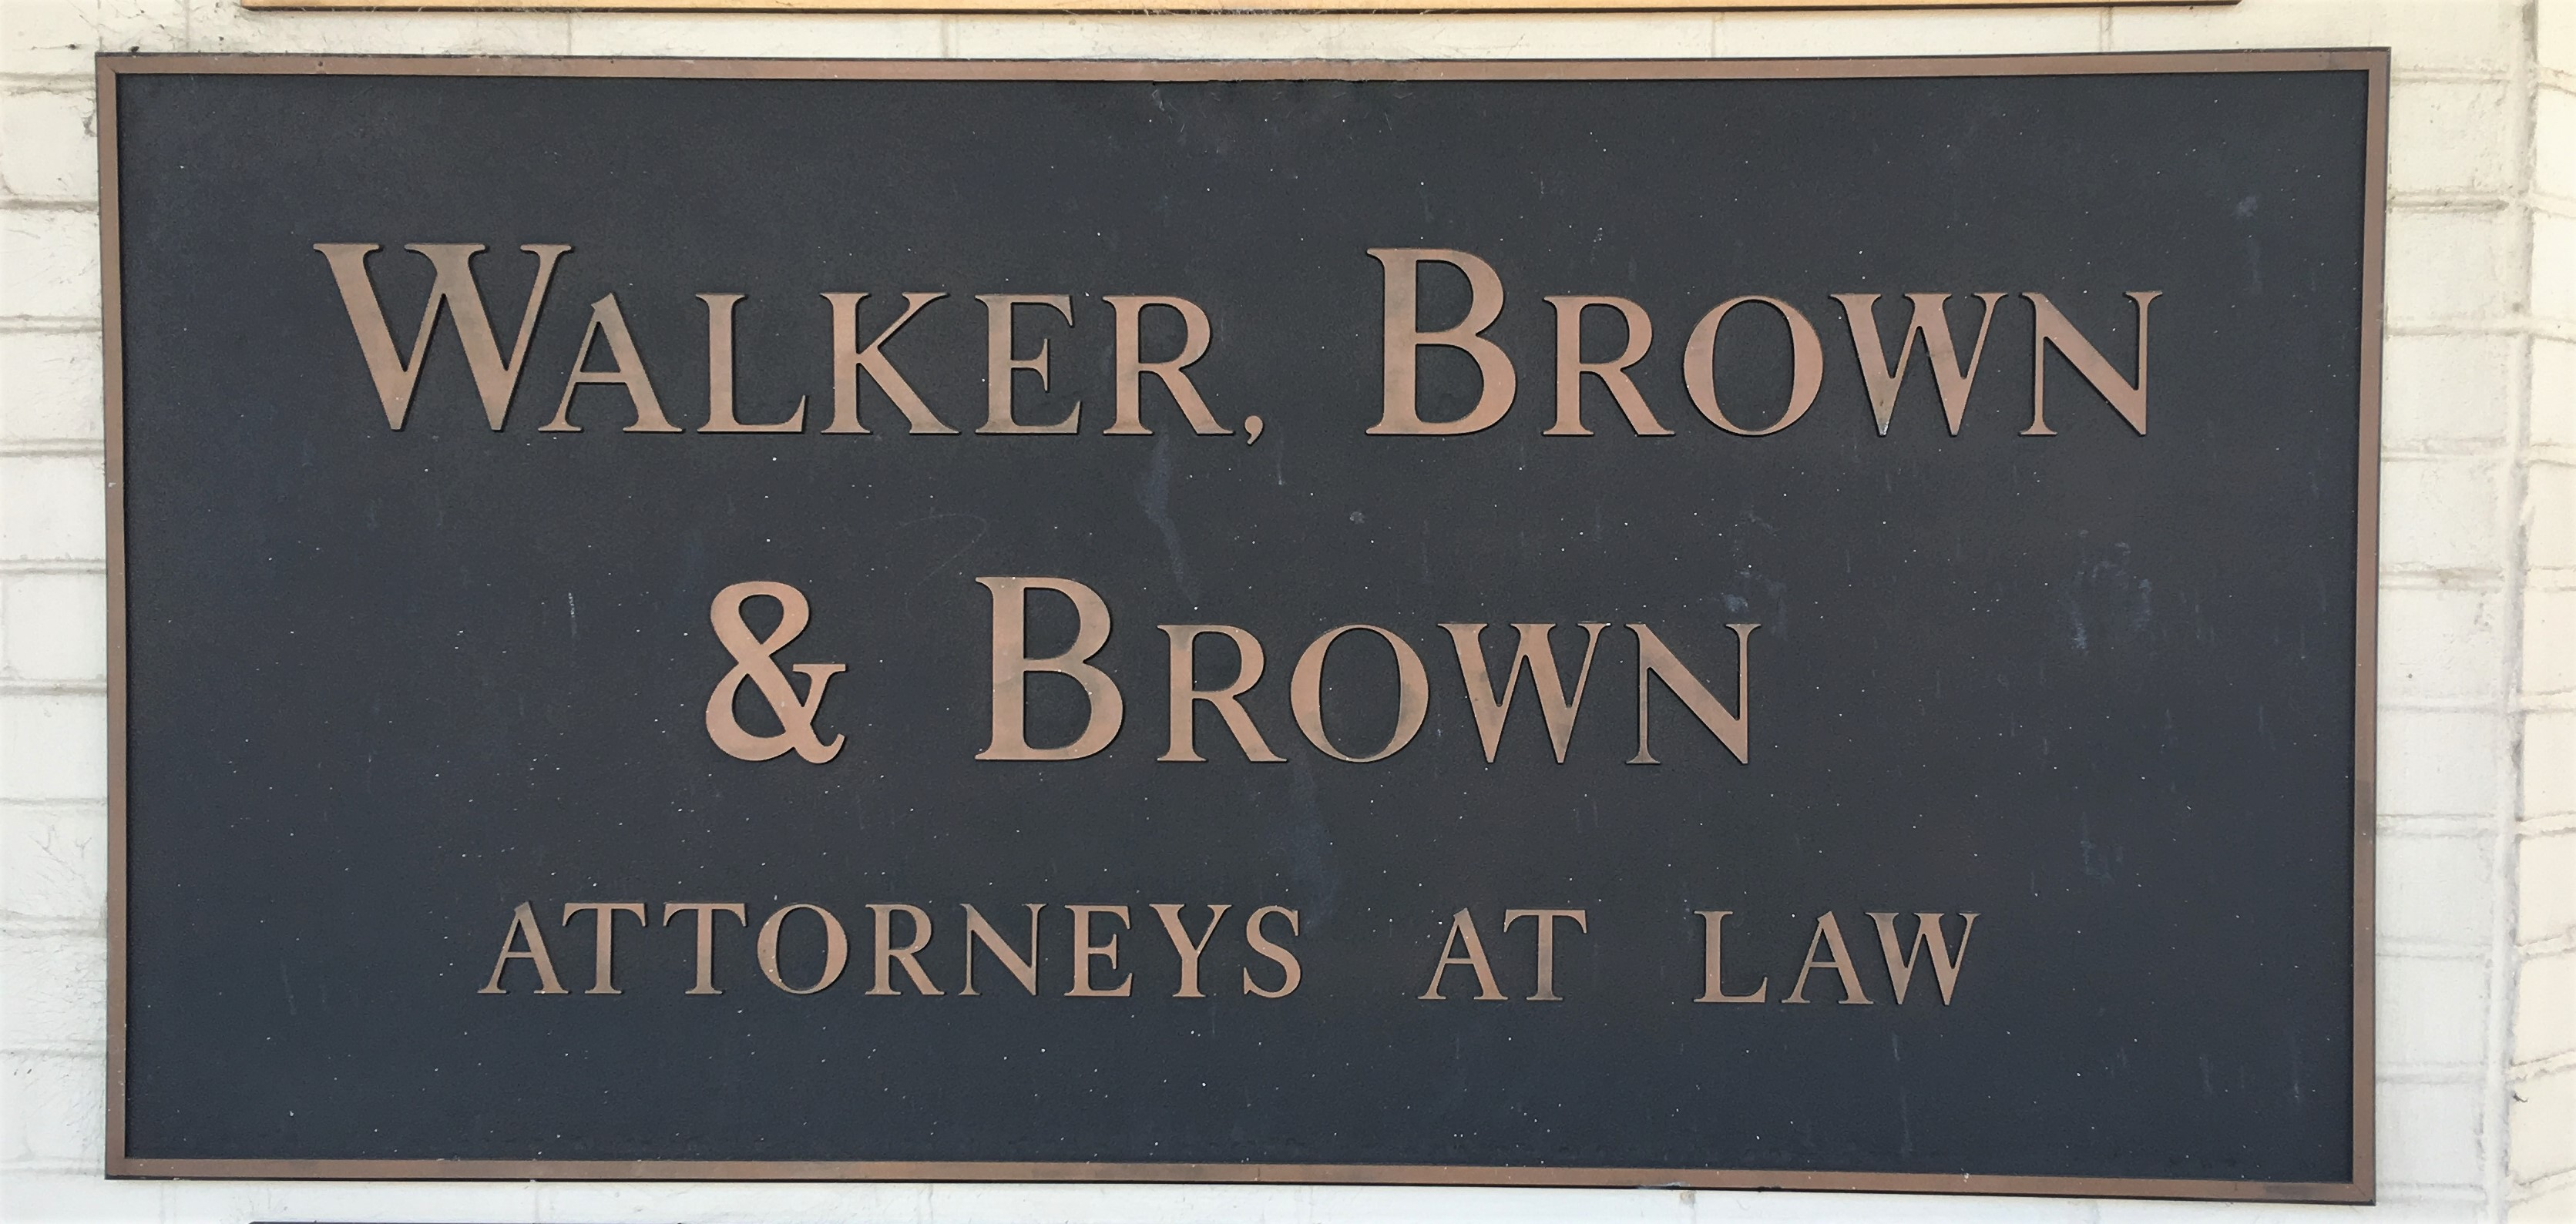 Walker, Brown & Brown